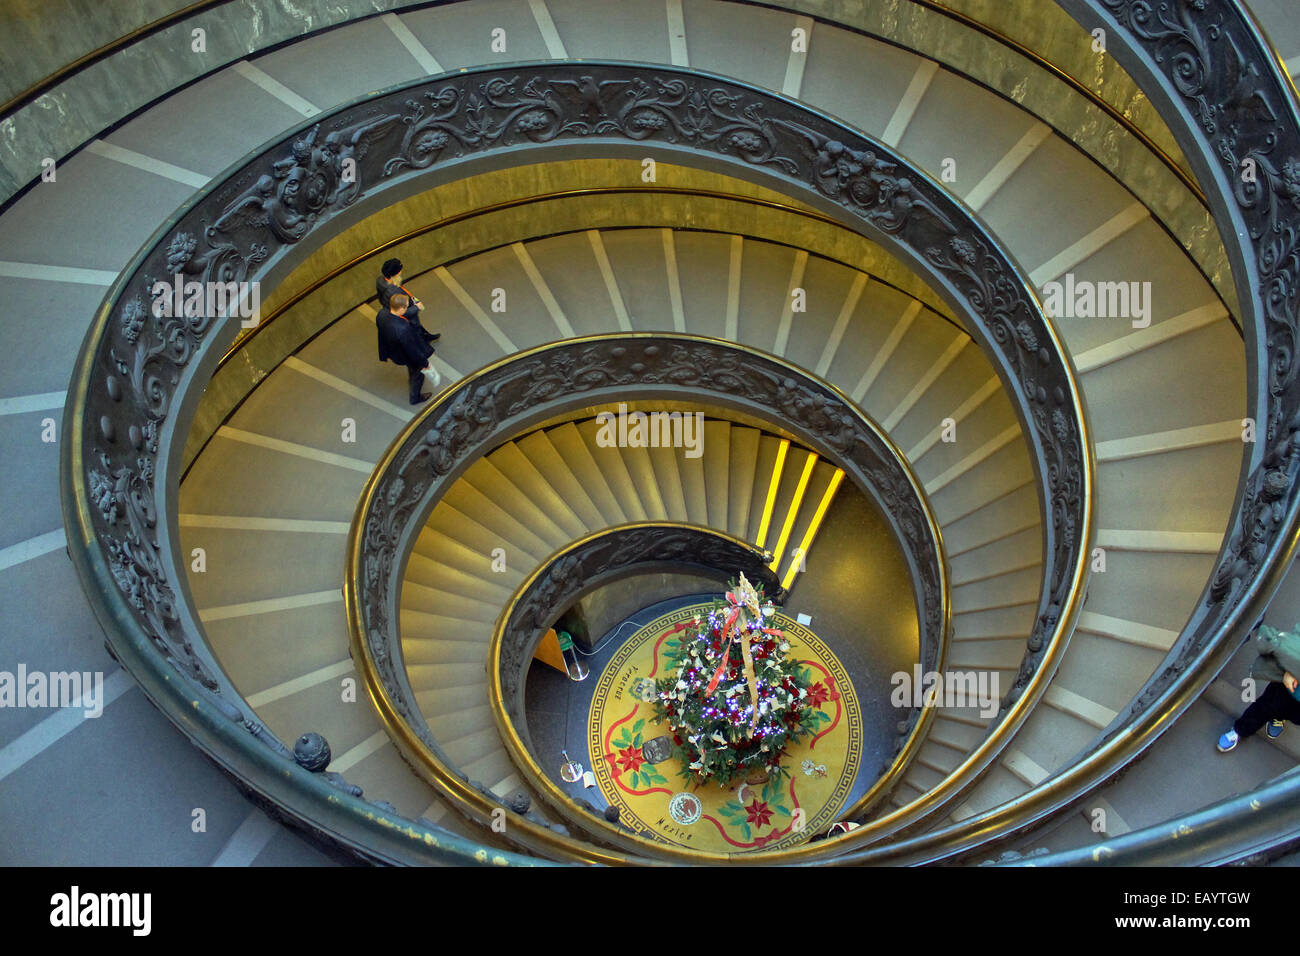 The Spiral Staircase In The Vatican Museum, With A Christmas Tree At The  Bottom.